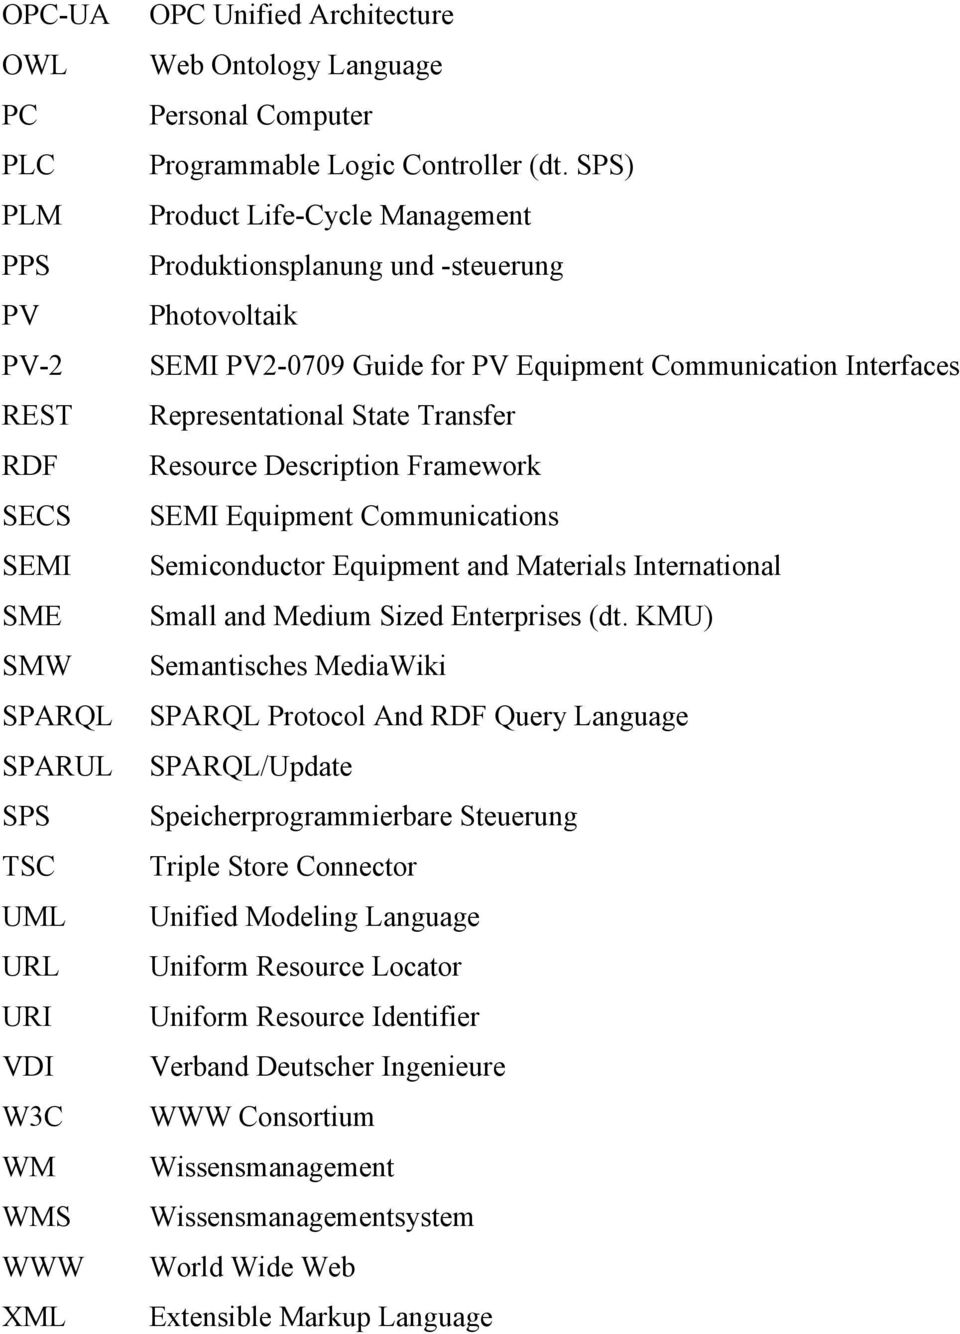 SPS) Product Life-Cycle Management Produktionsplanung und -steuerung Photovoltaik SEMI PV2-0709 Guide for PV Equipment Communication Interfaces Representational State Transfer Resource Description